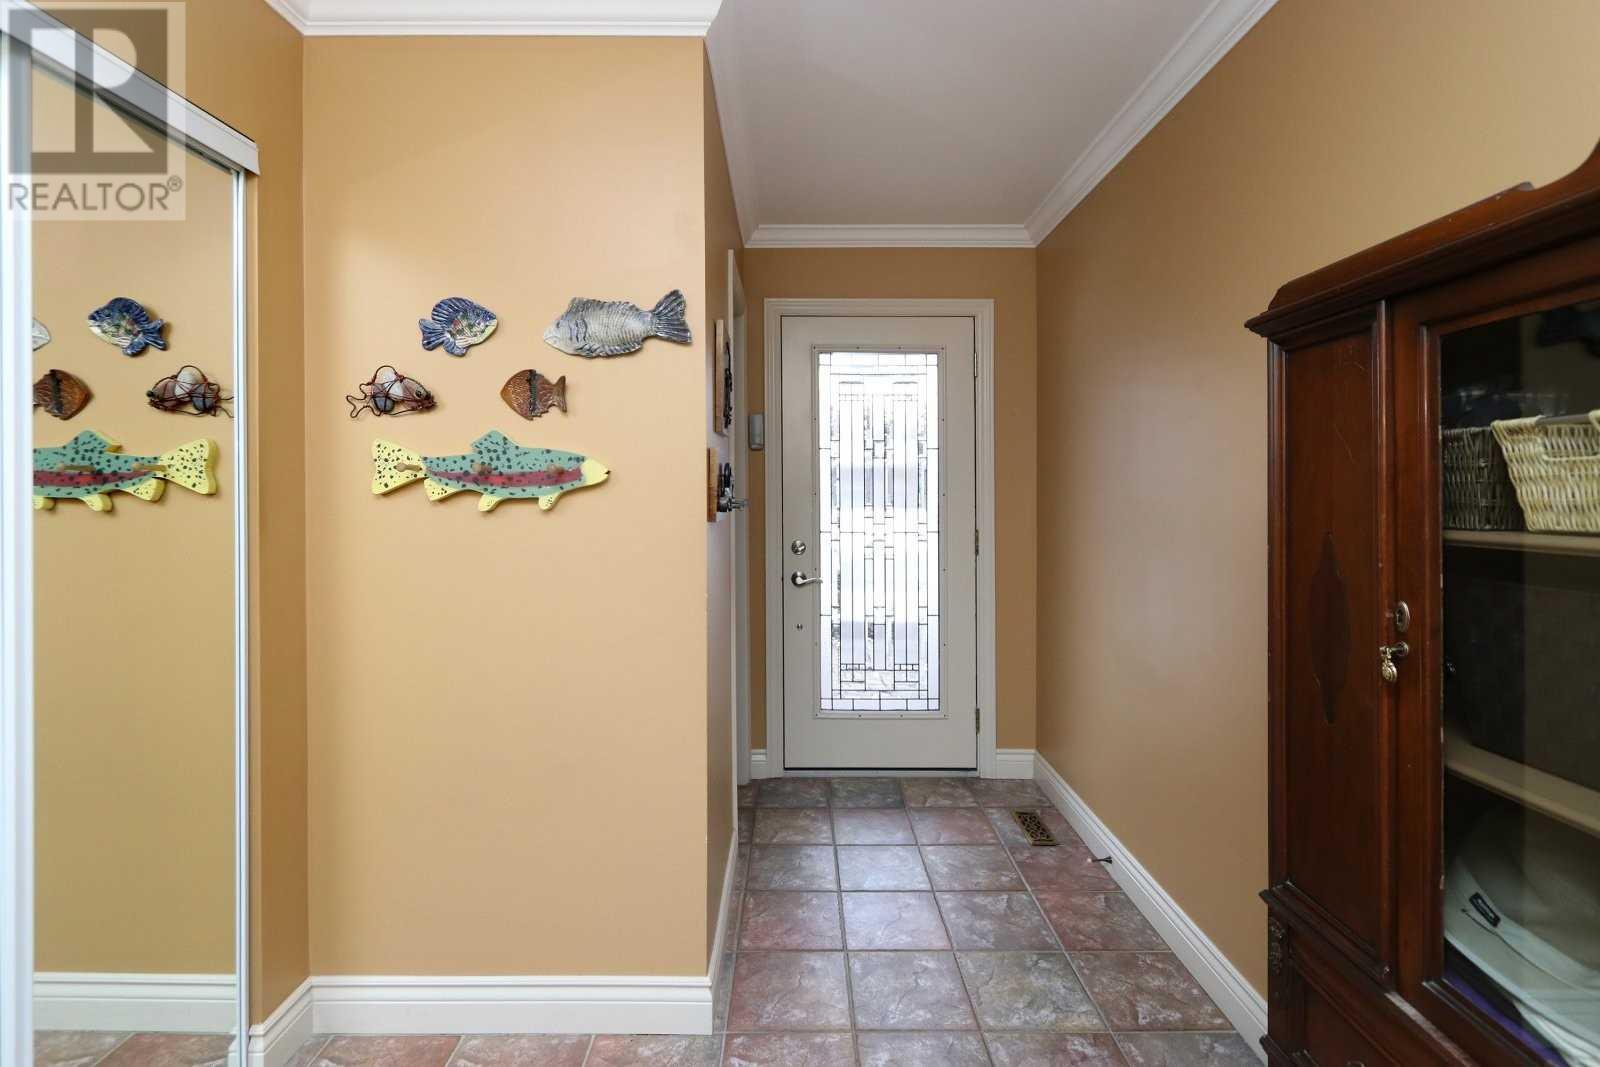 2524 Windjammer Rd, Mississauga, Ontario  L5L 1H9 - Photo 2 - W4675885